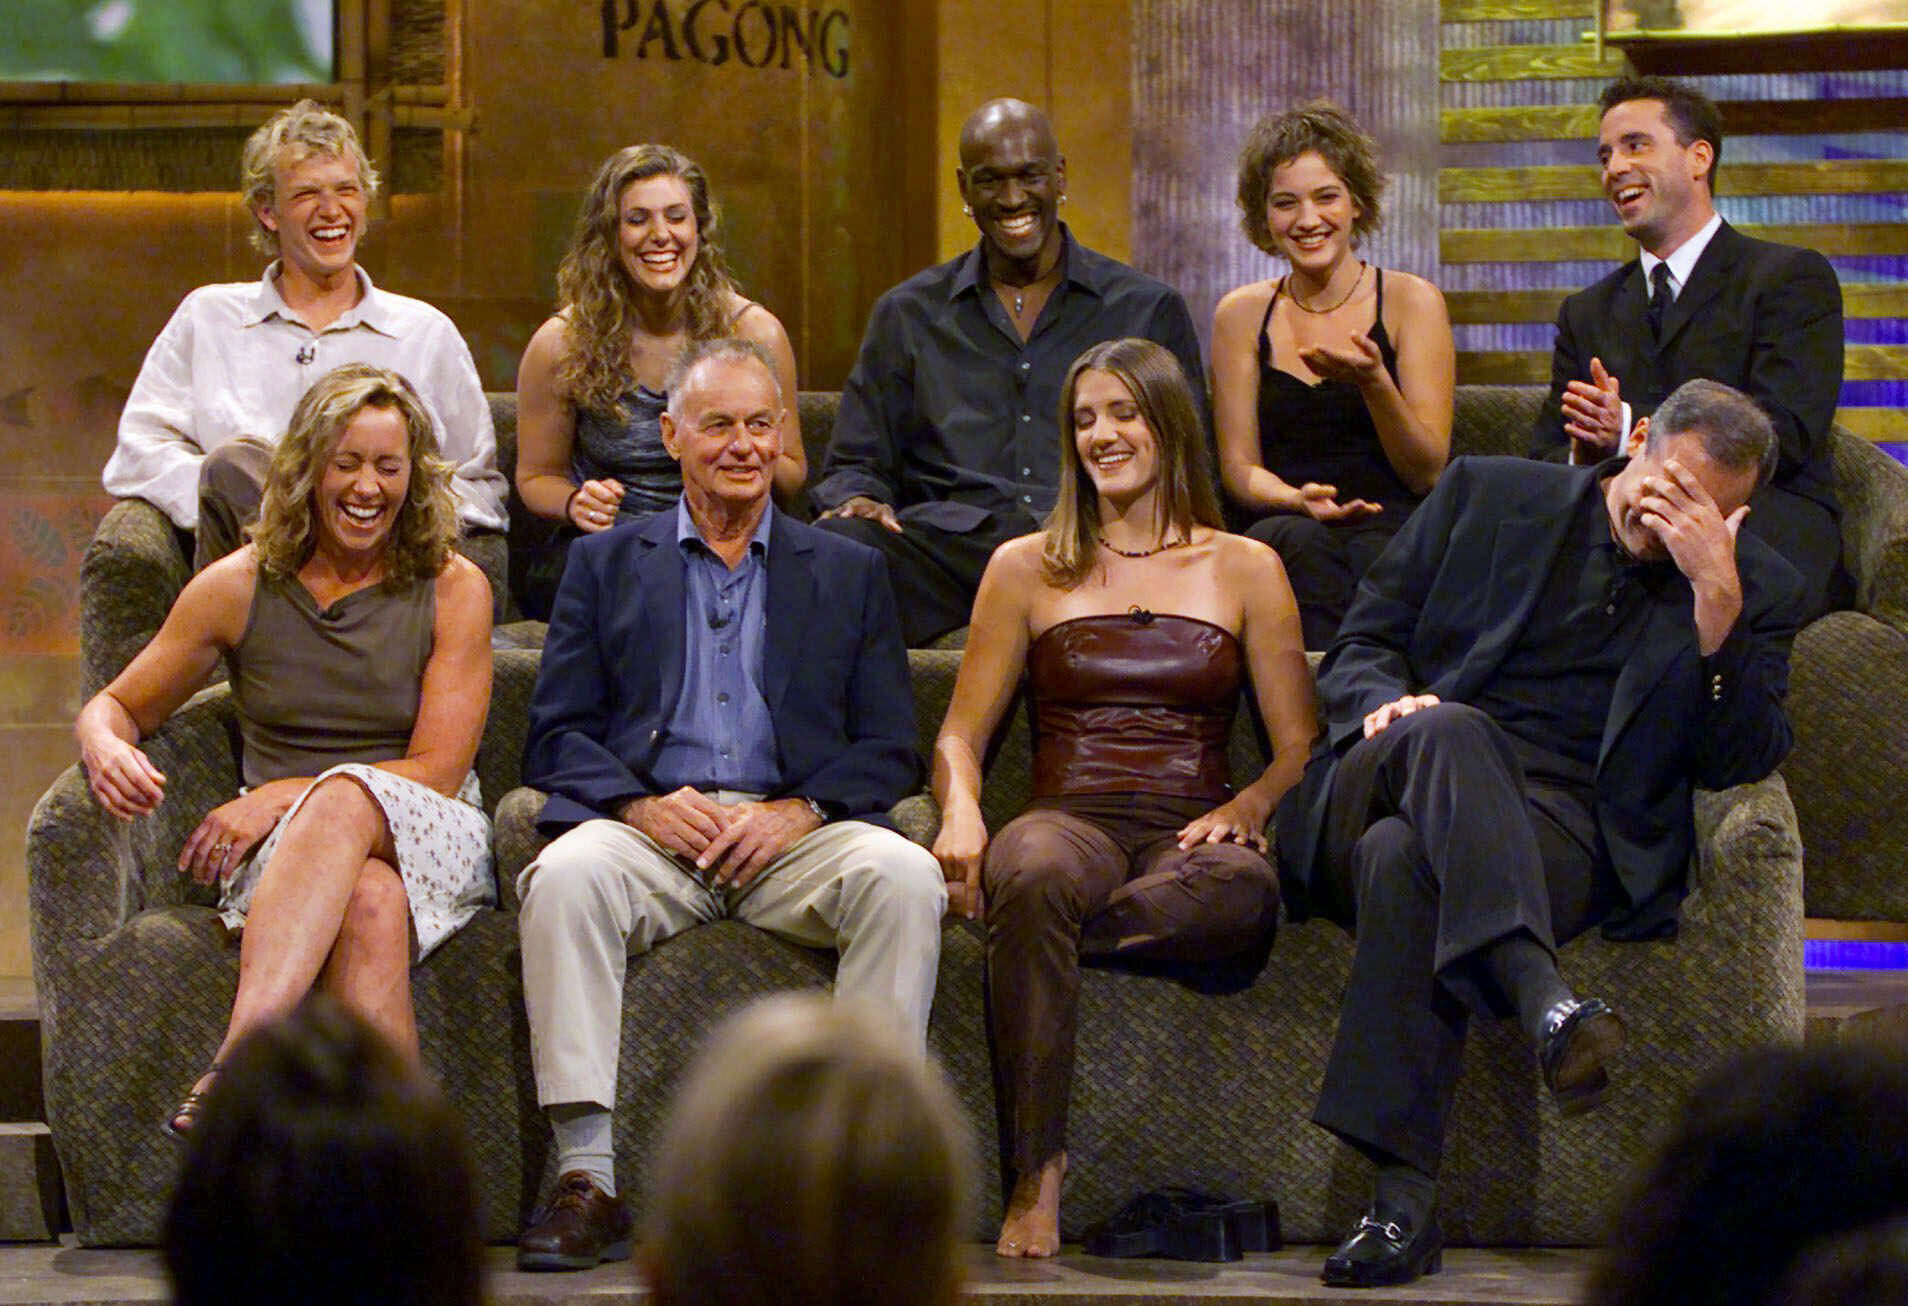 Susan Hawk, Rudy Boesch, Kelly Wiglesworth, Richard Hatch, Greg Buis, Jenna Lewis, Gervase Peterson, Colleen Haskell, Sean Kenniff